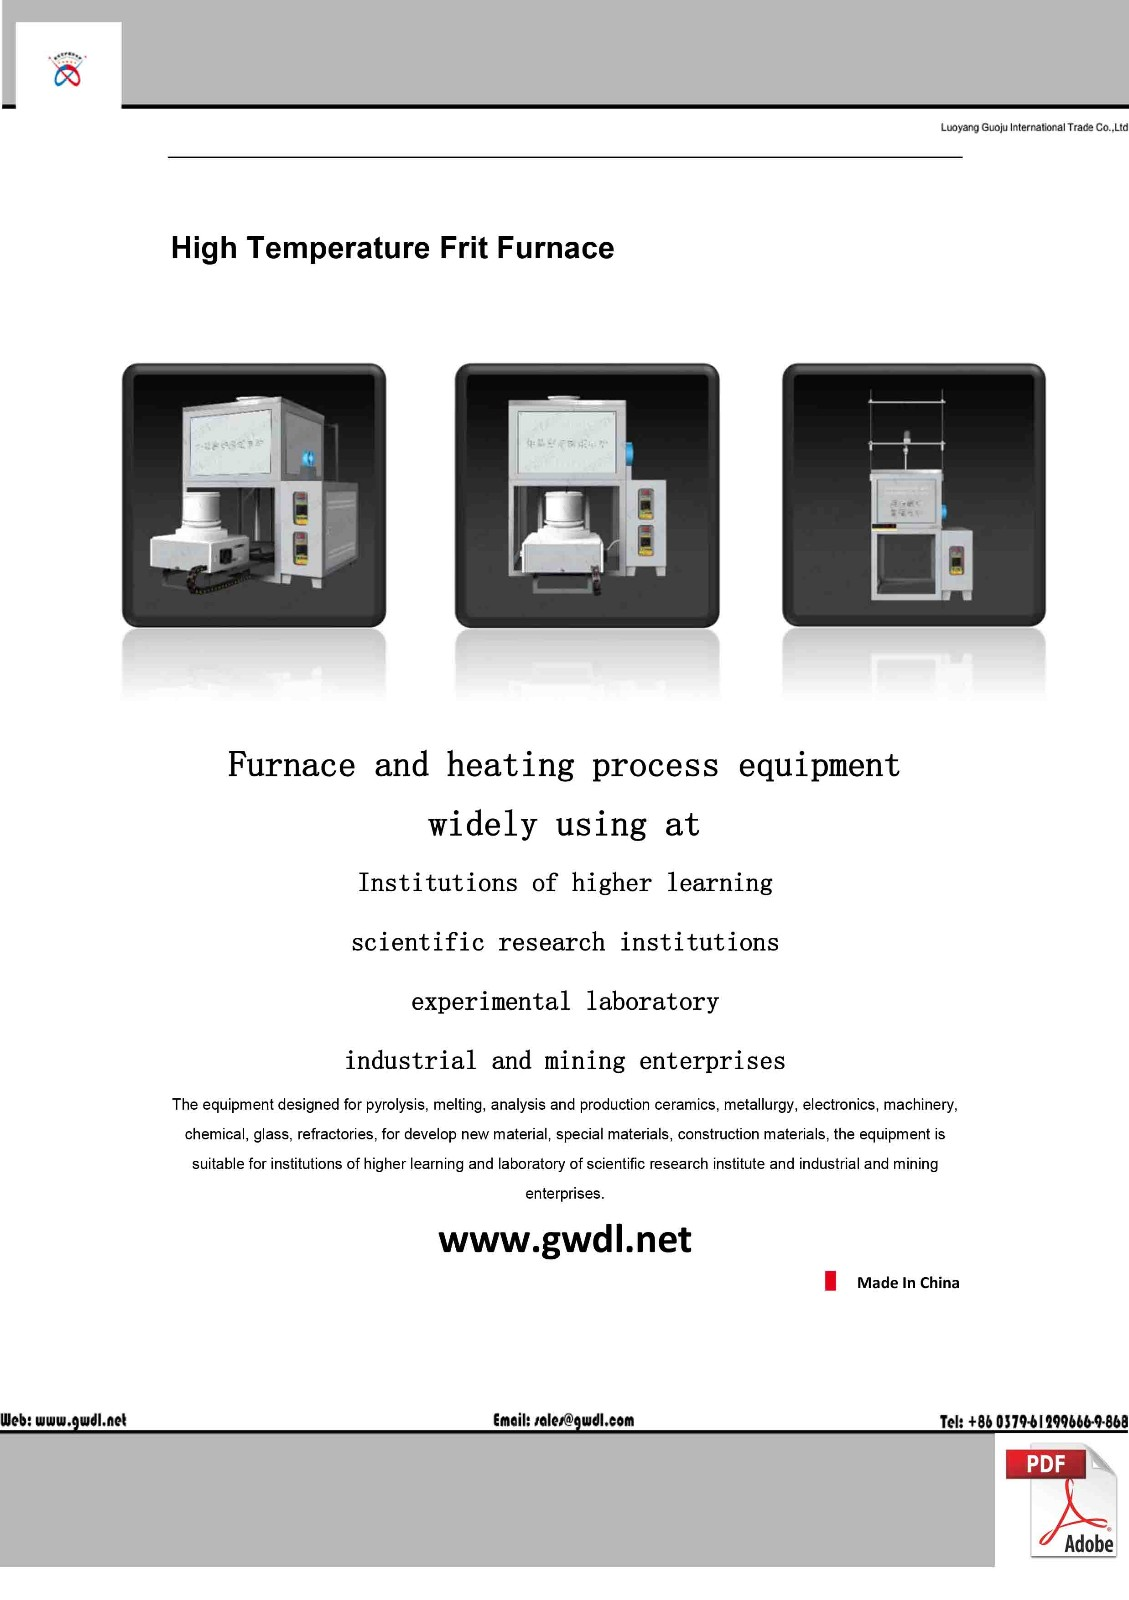 High Temperature Large Scale Lifting Frit Furnace(GWL-R)